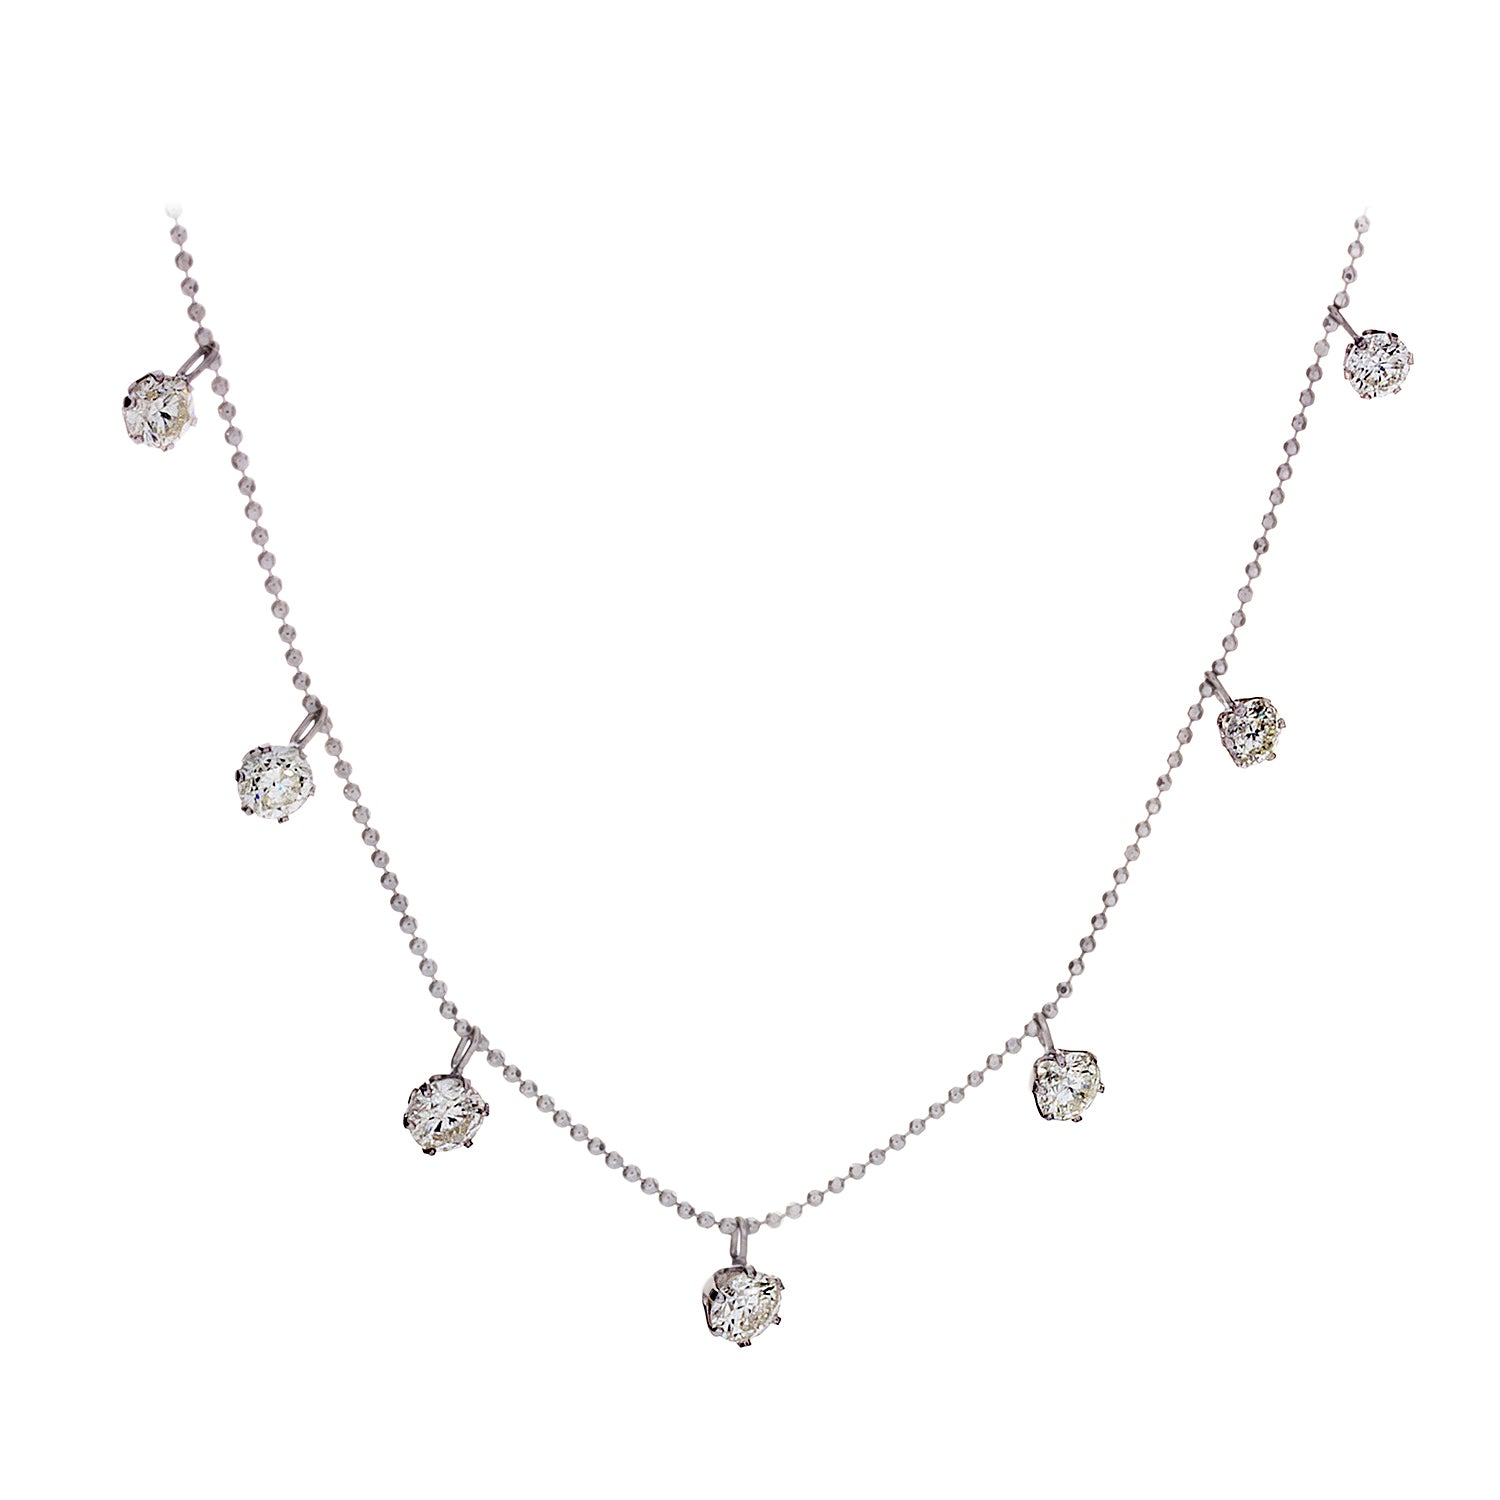 Floating Diamonds & 18K White Gold Necklace - SOLD/CAN BE SPECIAL ORDERED WITH 4-6 WEEKS DELIVERY TIME FRAME